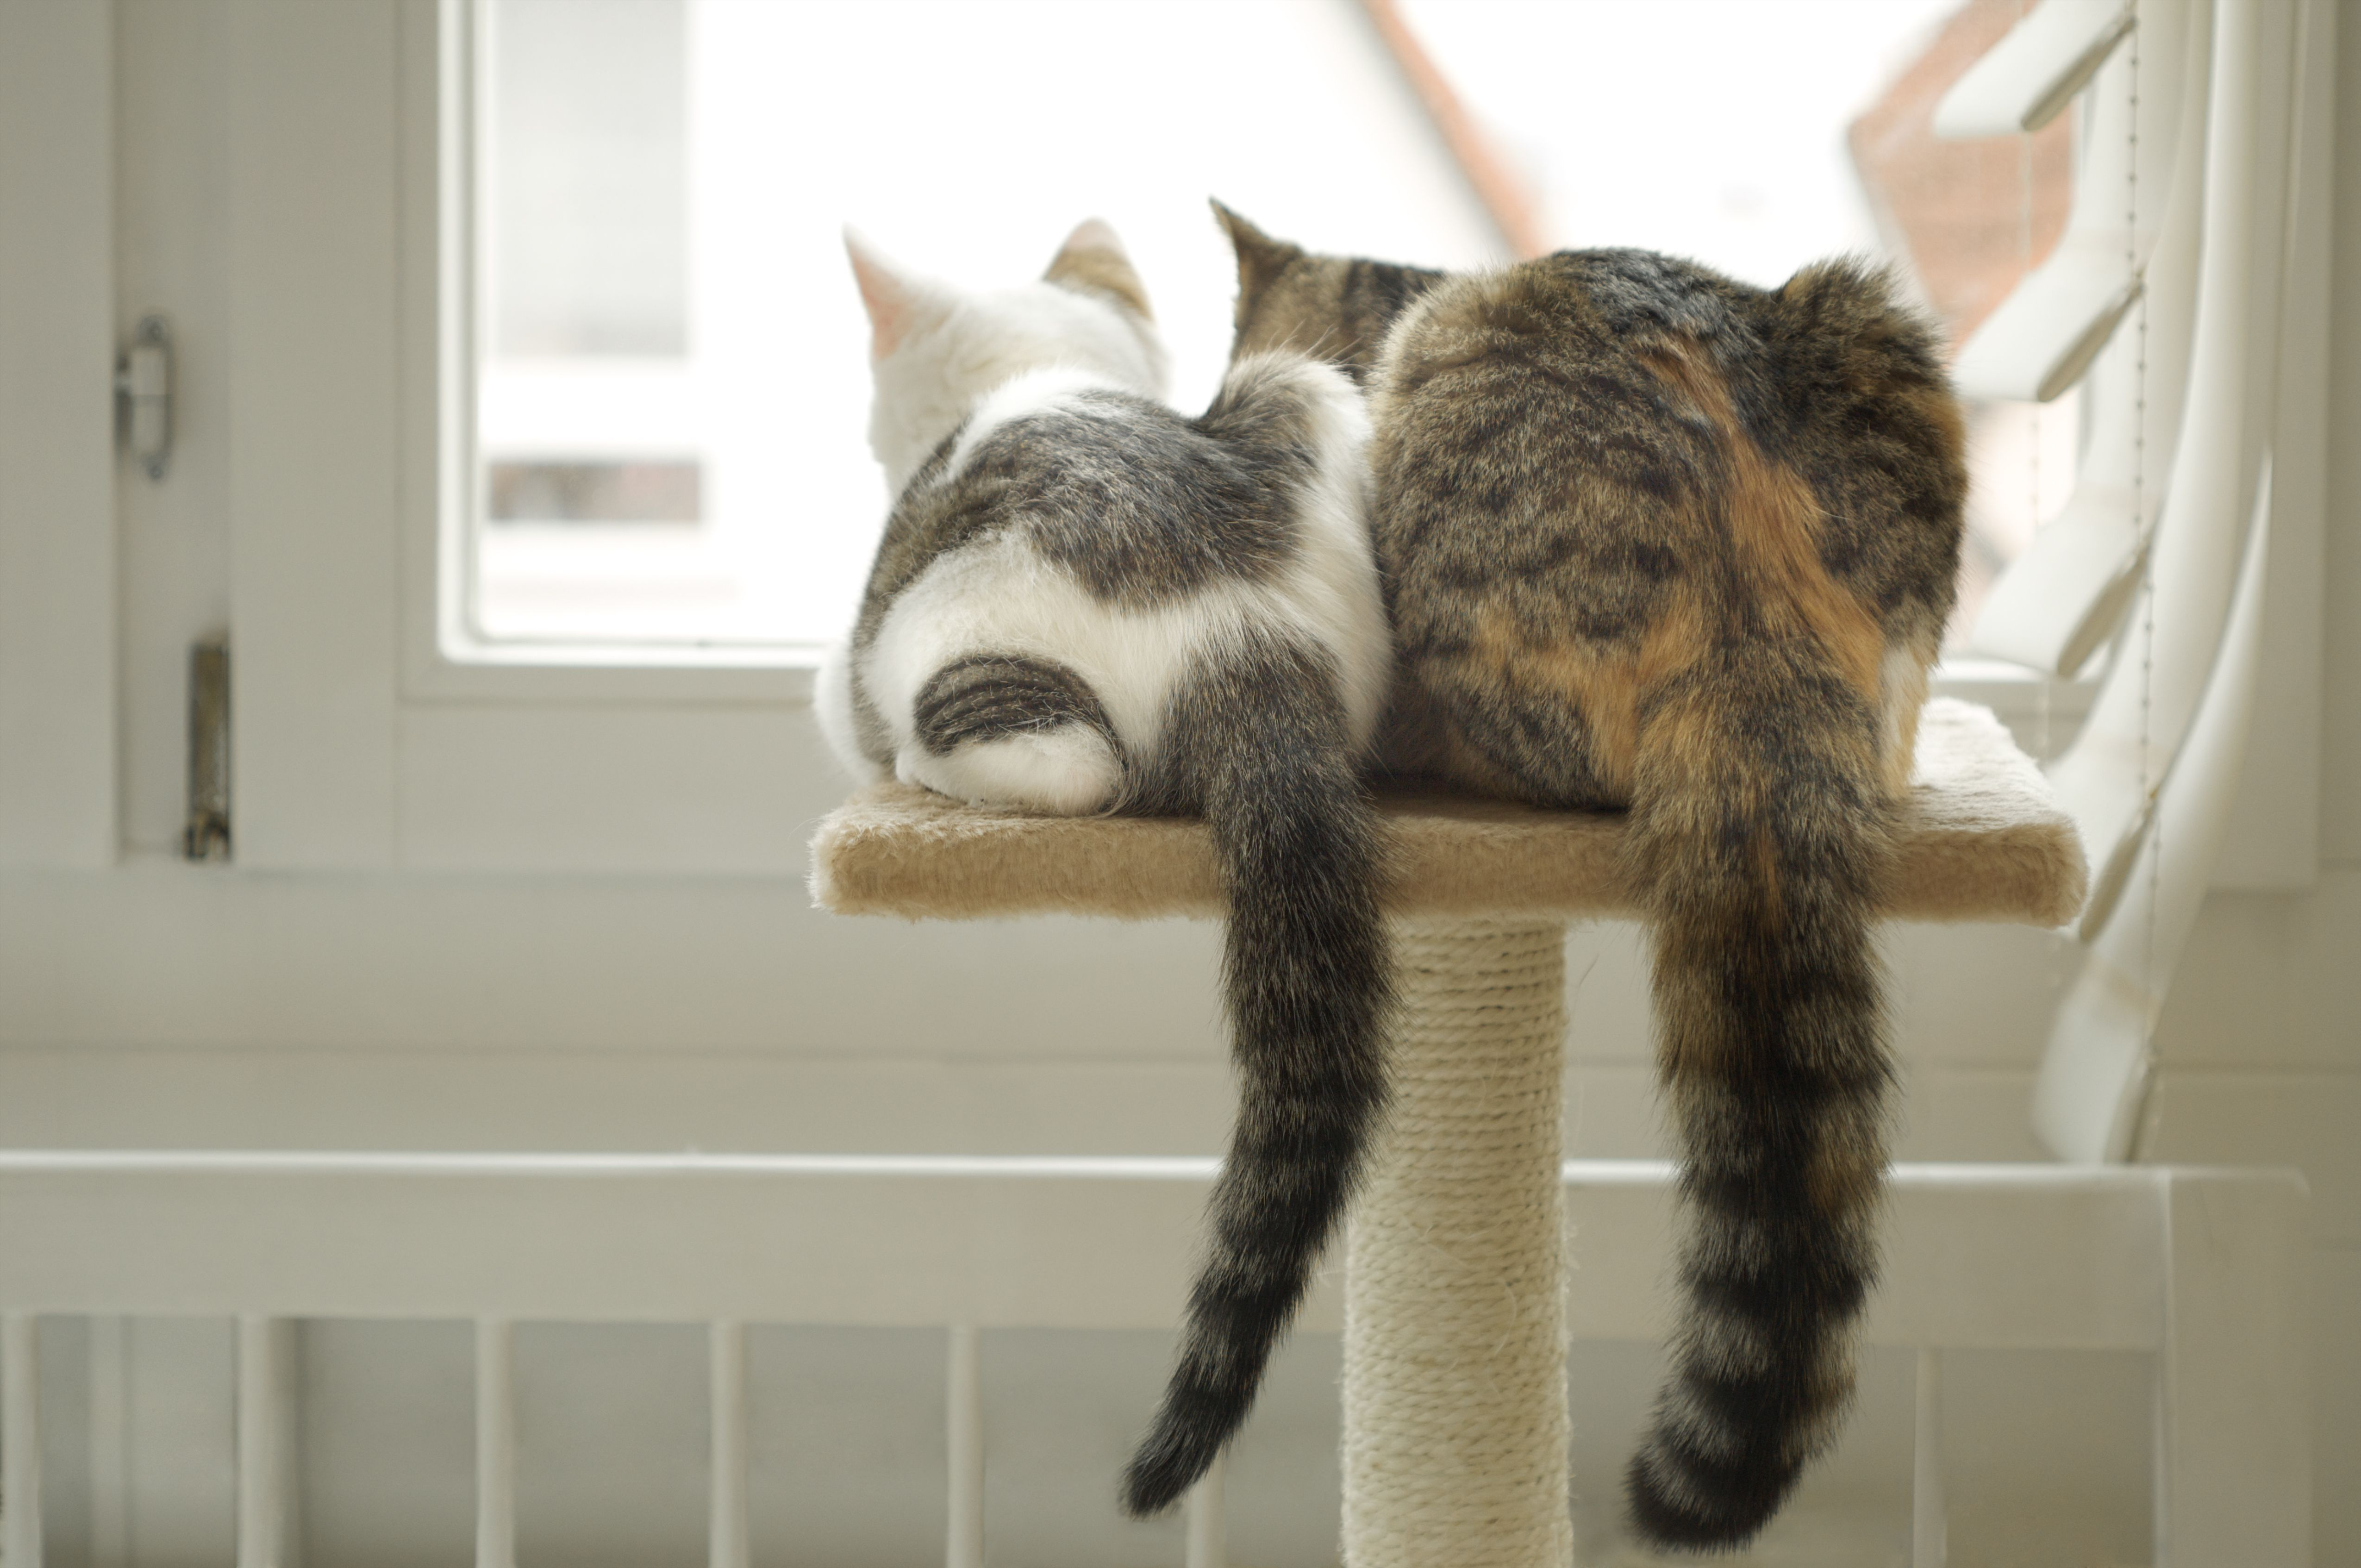 Two cats sitting on cat tree looking out window